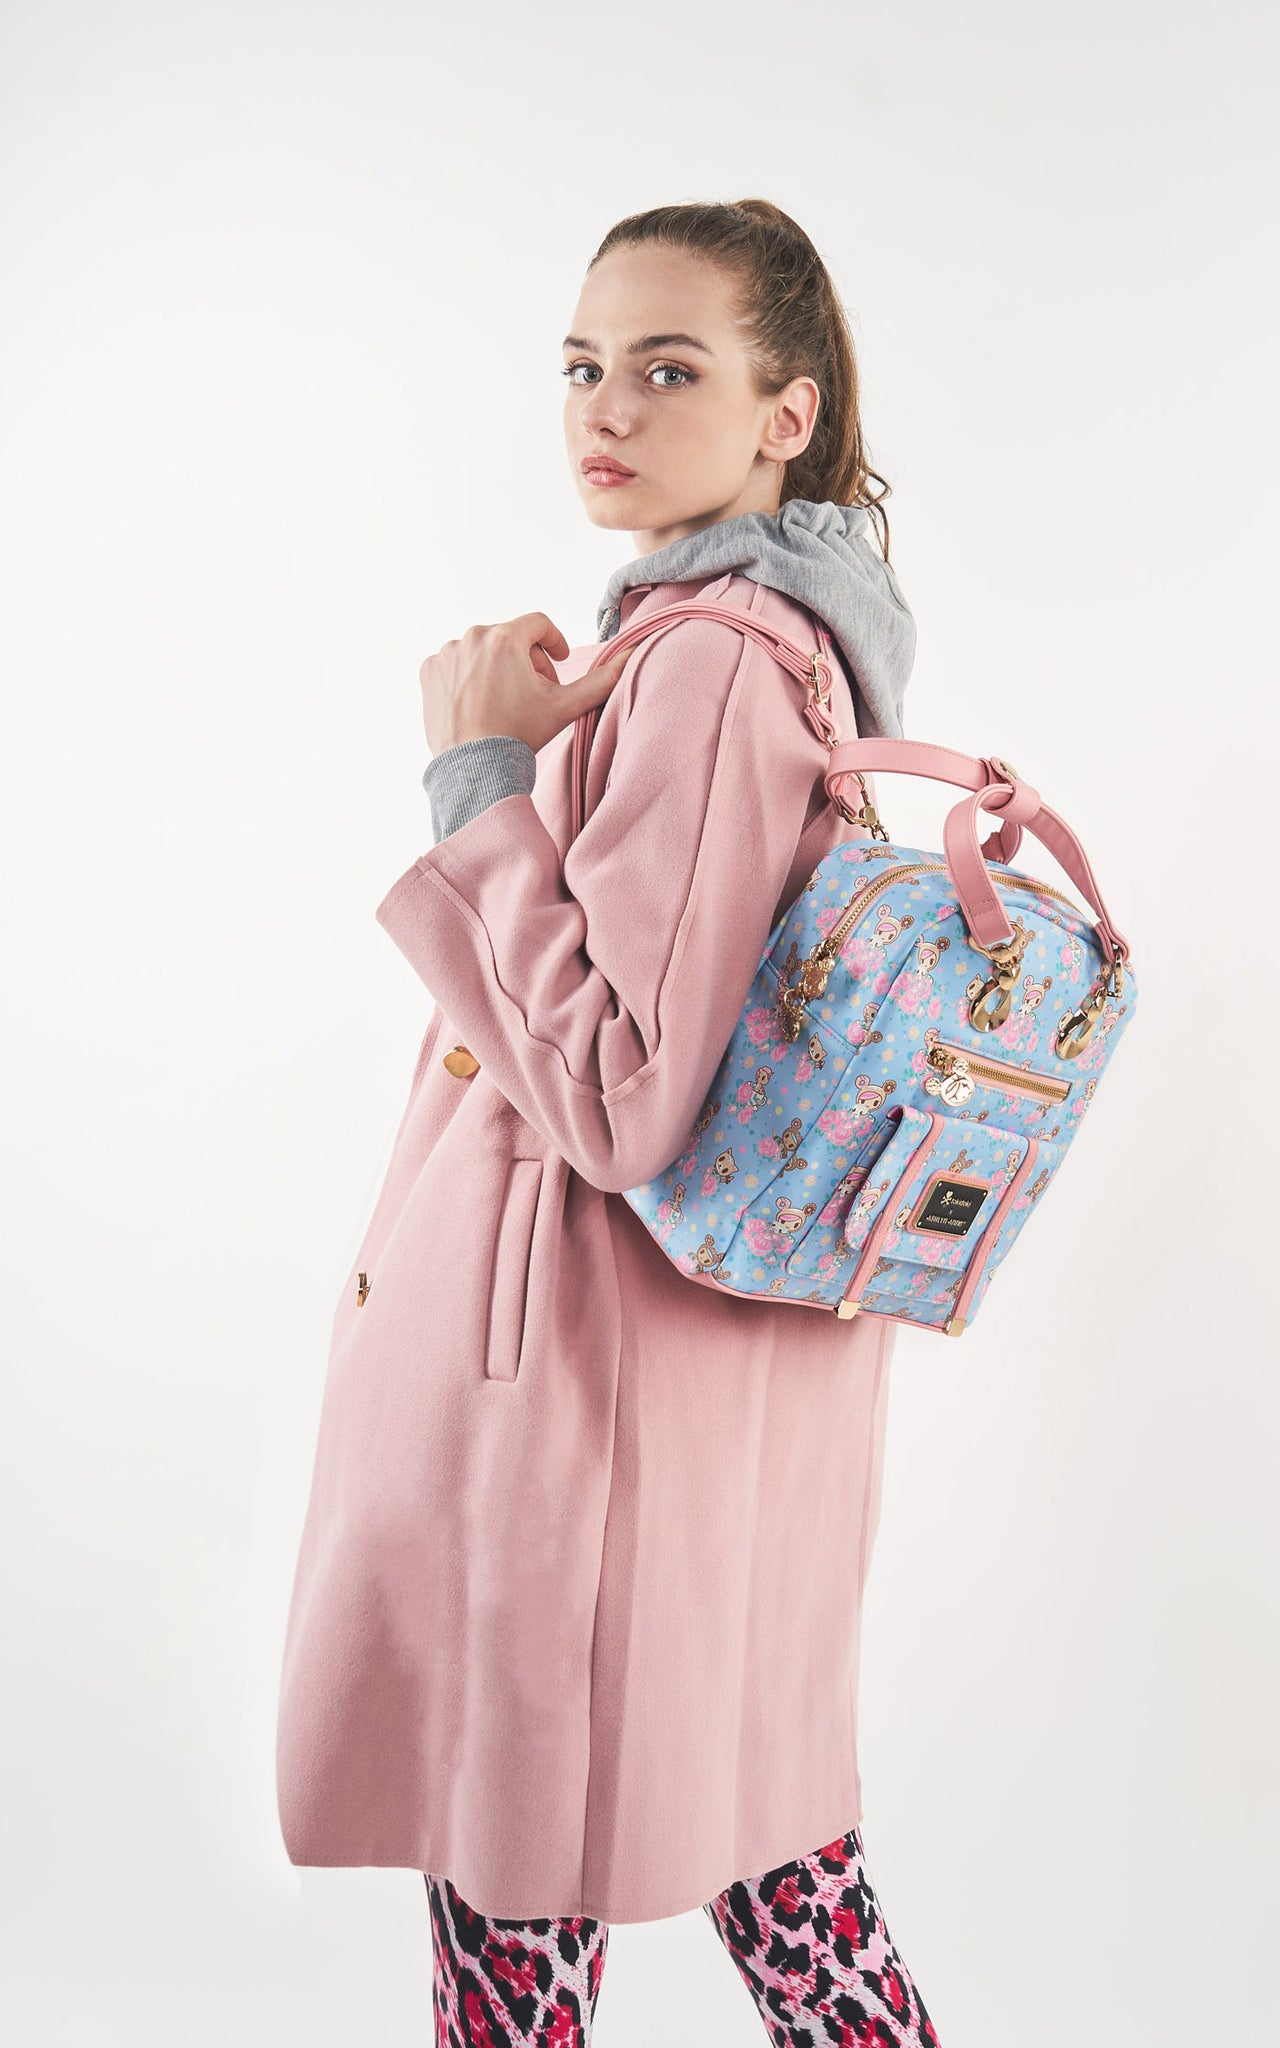 TDxAN Pastel Clover Backpack - A.Anne, Tokidoki, Ashlyn Anne, Fashion, Handbags, School, Bag, Accessories